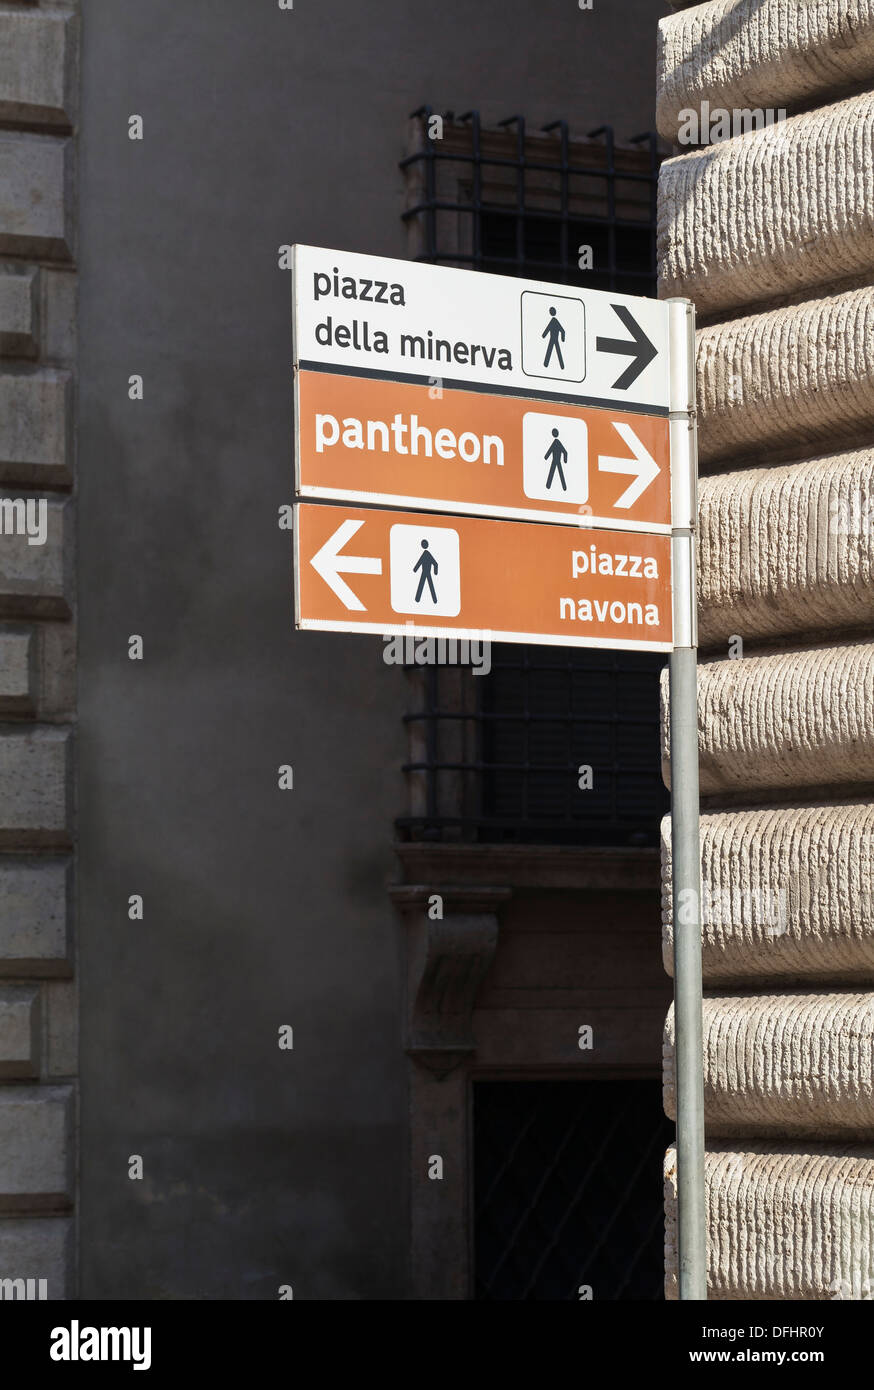 Directions to tourist locations in Rome, Italy - Stock Image